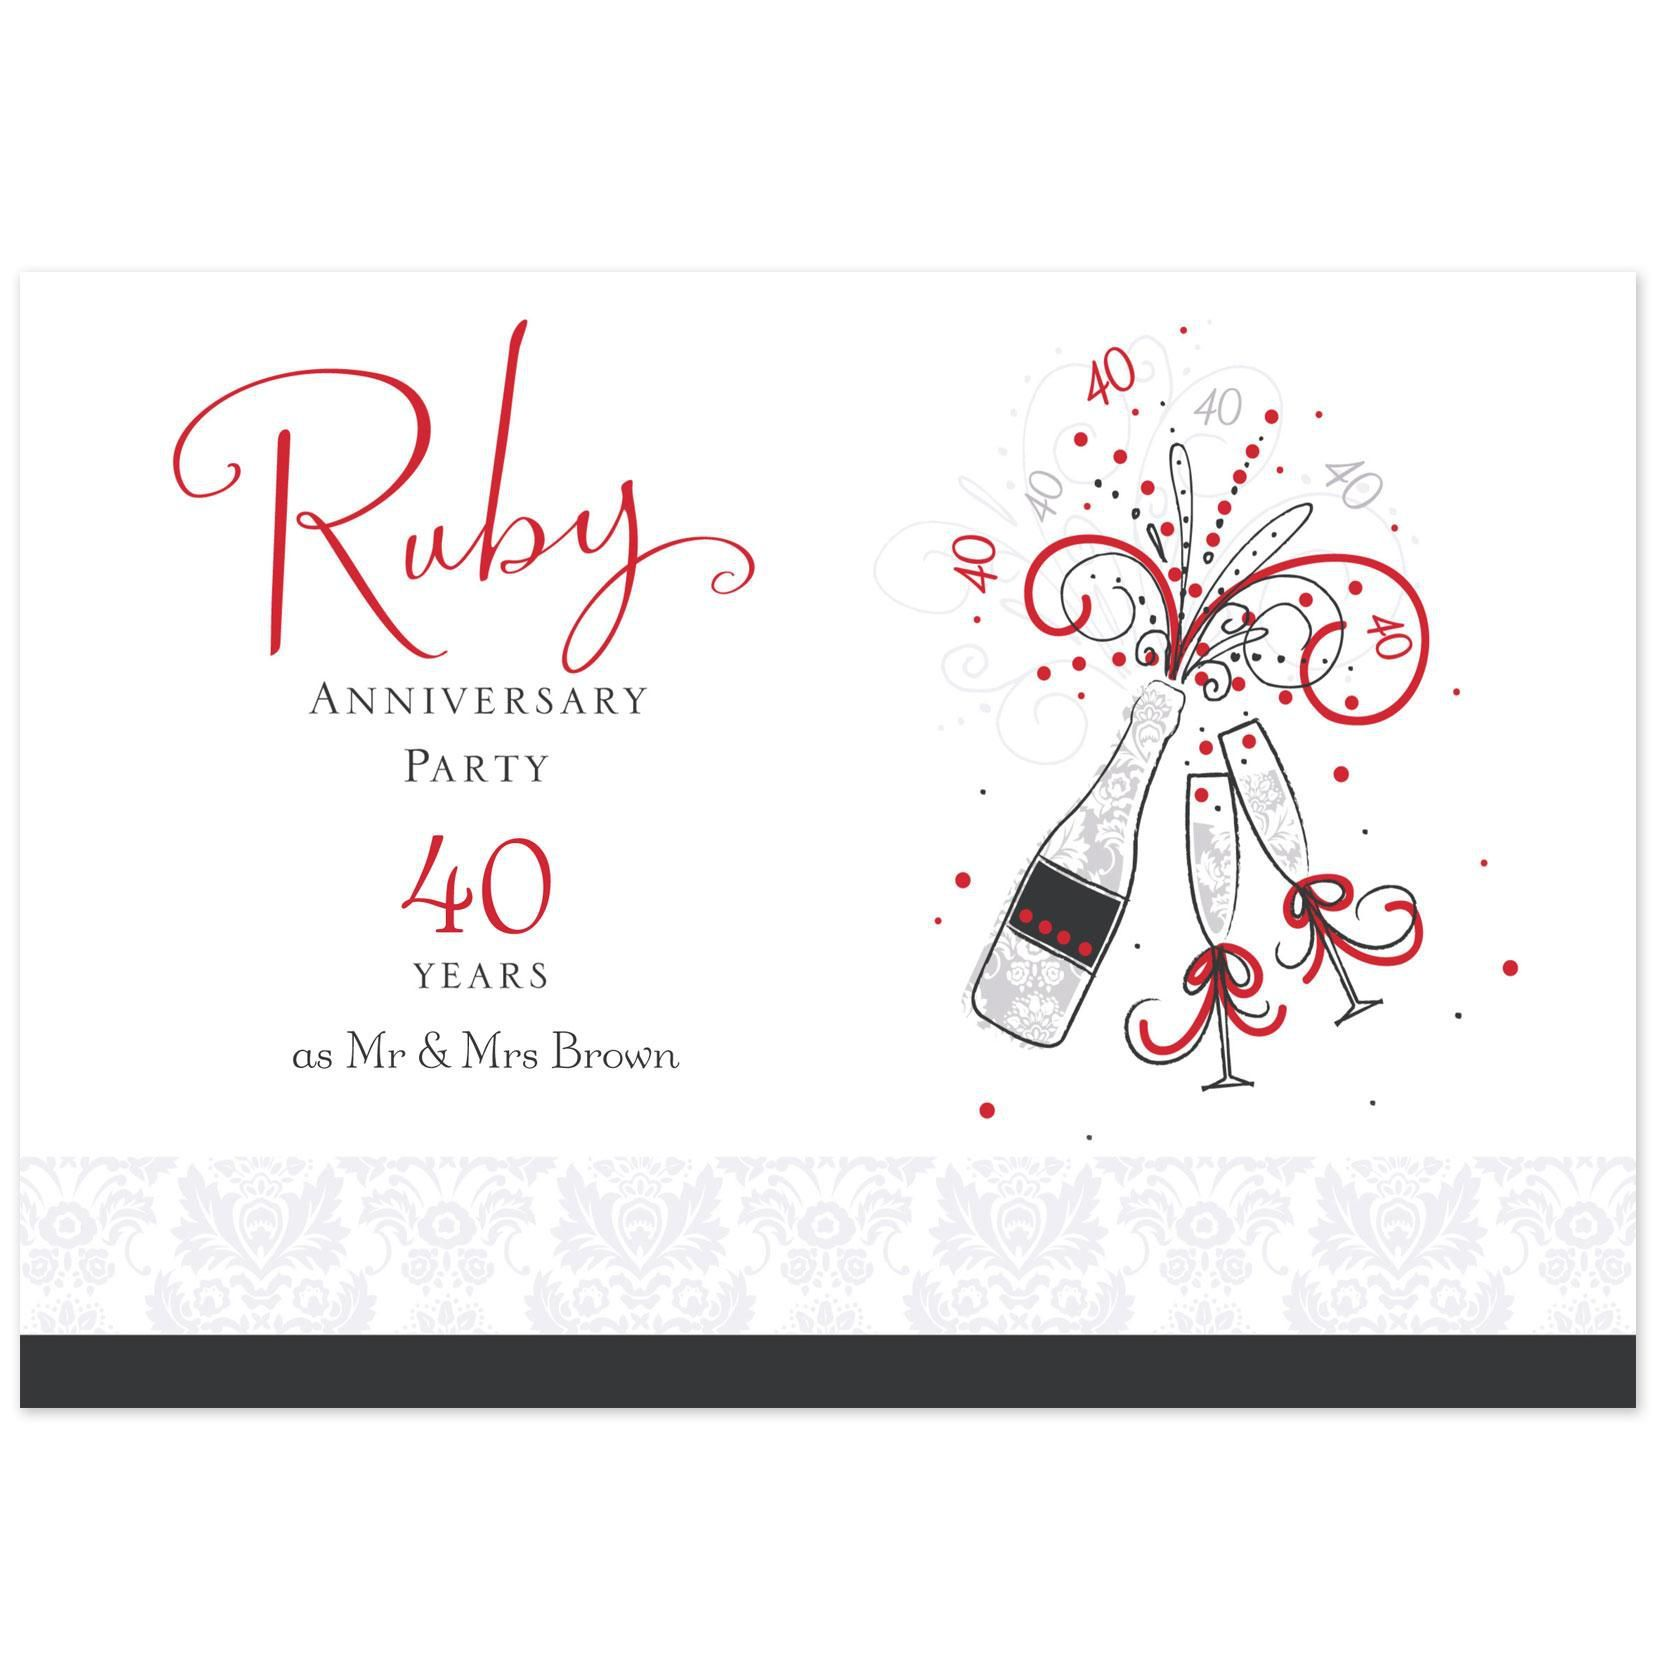 Ruby Anniversary Invitations Uk Anniversary Invitations